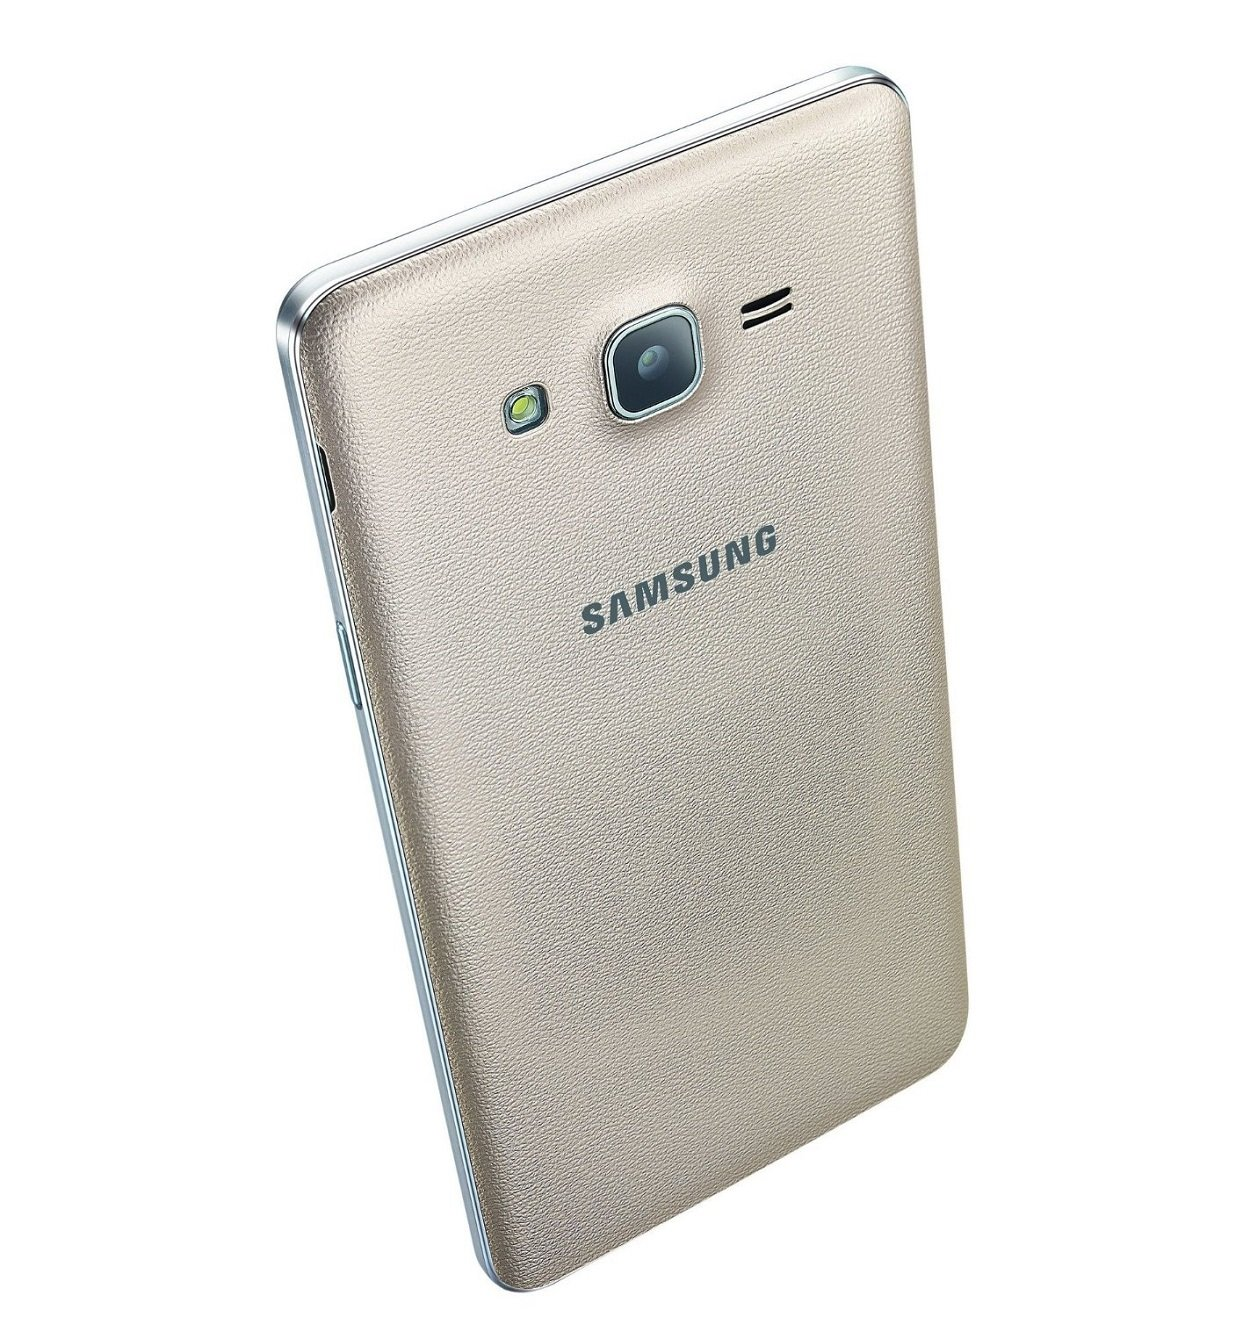 Samsung On7 Pro (Gold) from Amazon @ 9,990